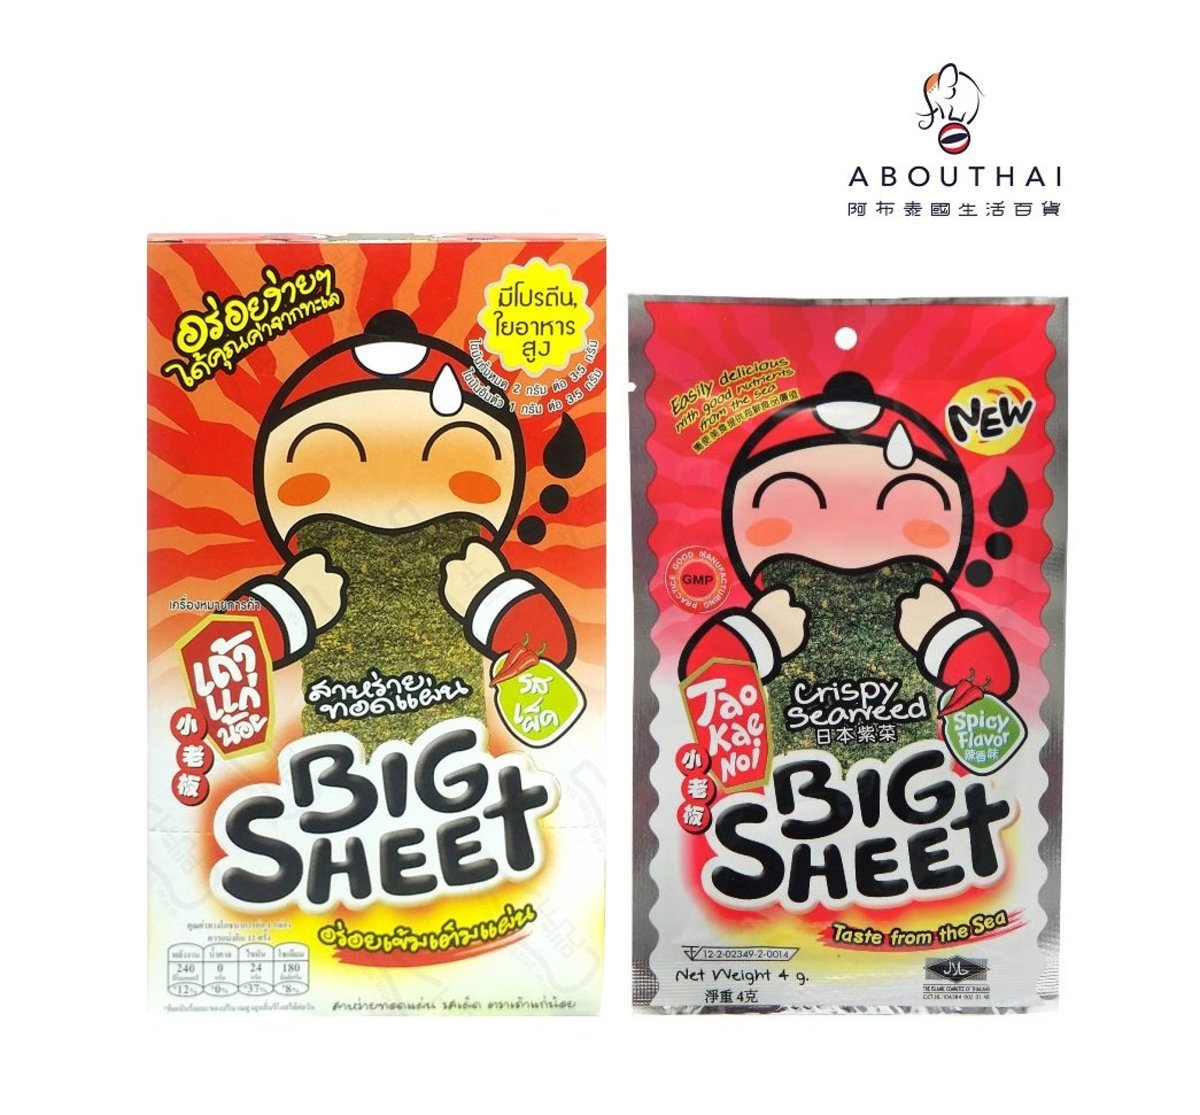 Big Sheet Crispy Seaweed (Spicy) 3.5g x 12